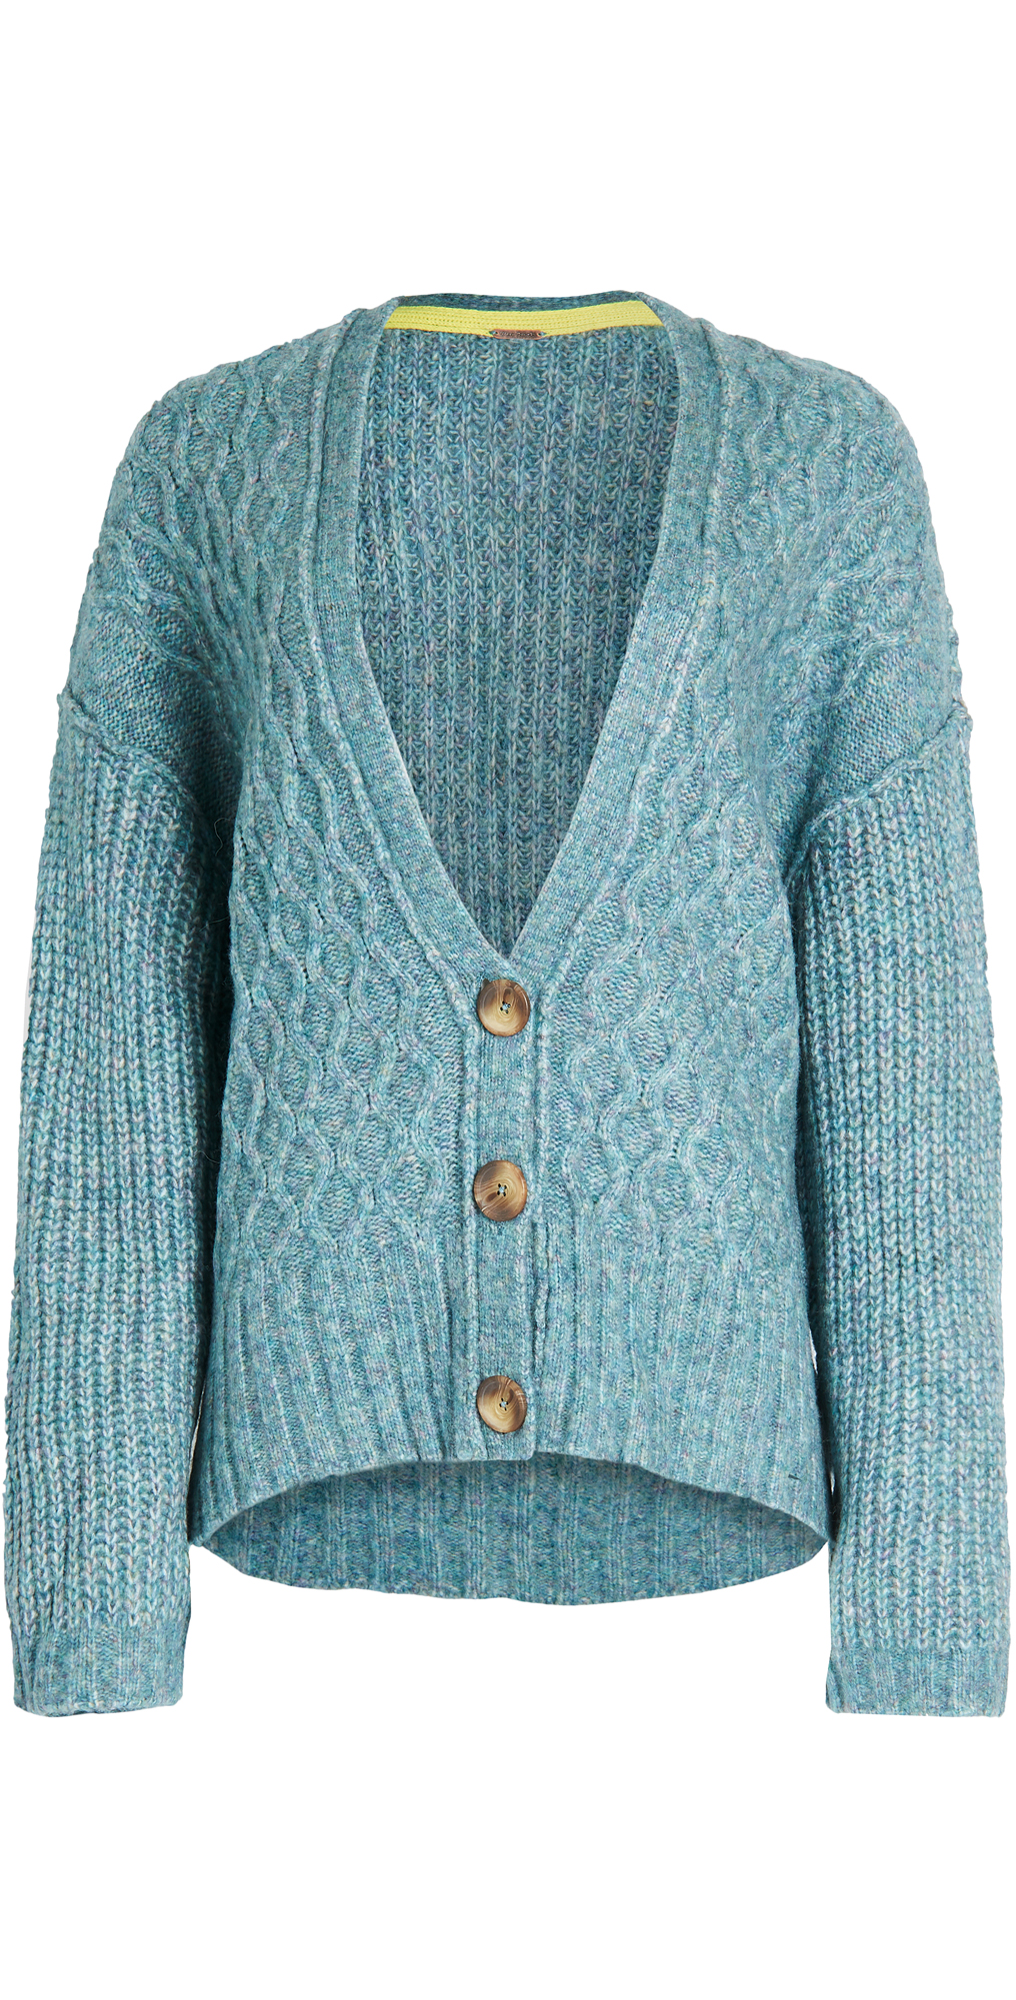 Free People Molly Cable Cardigan